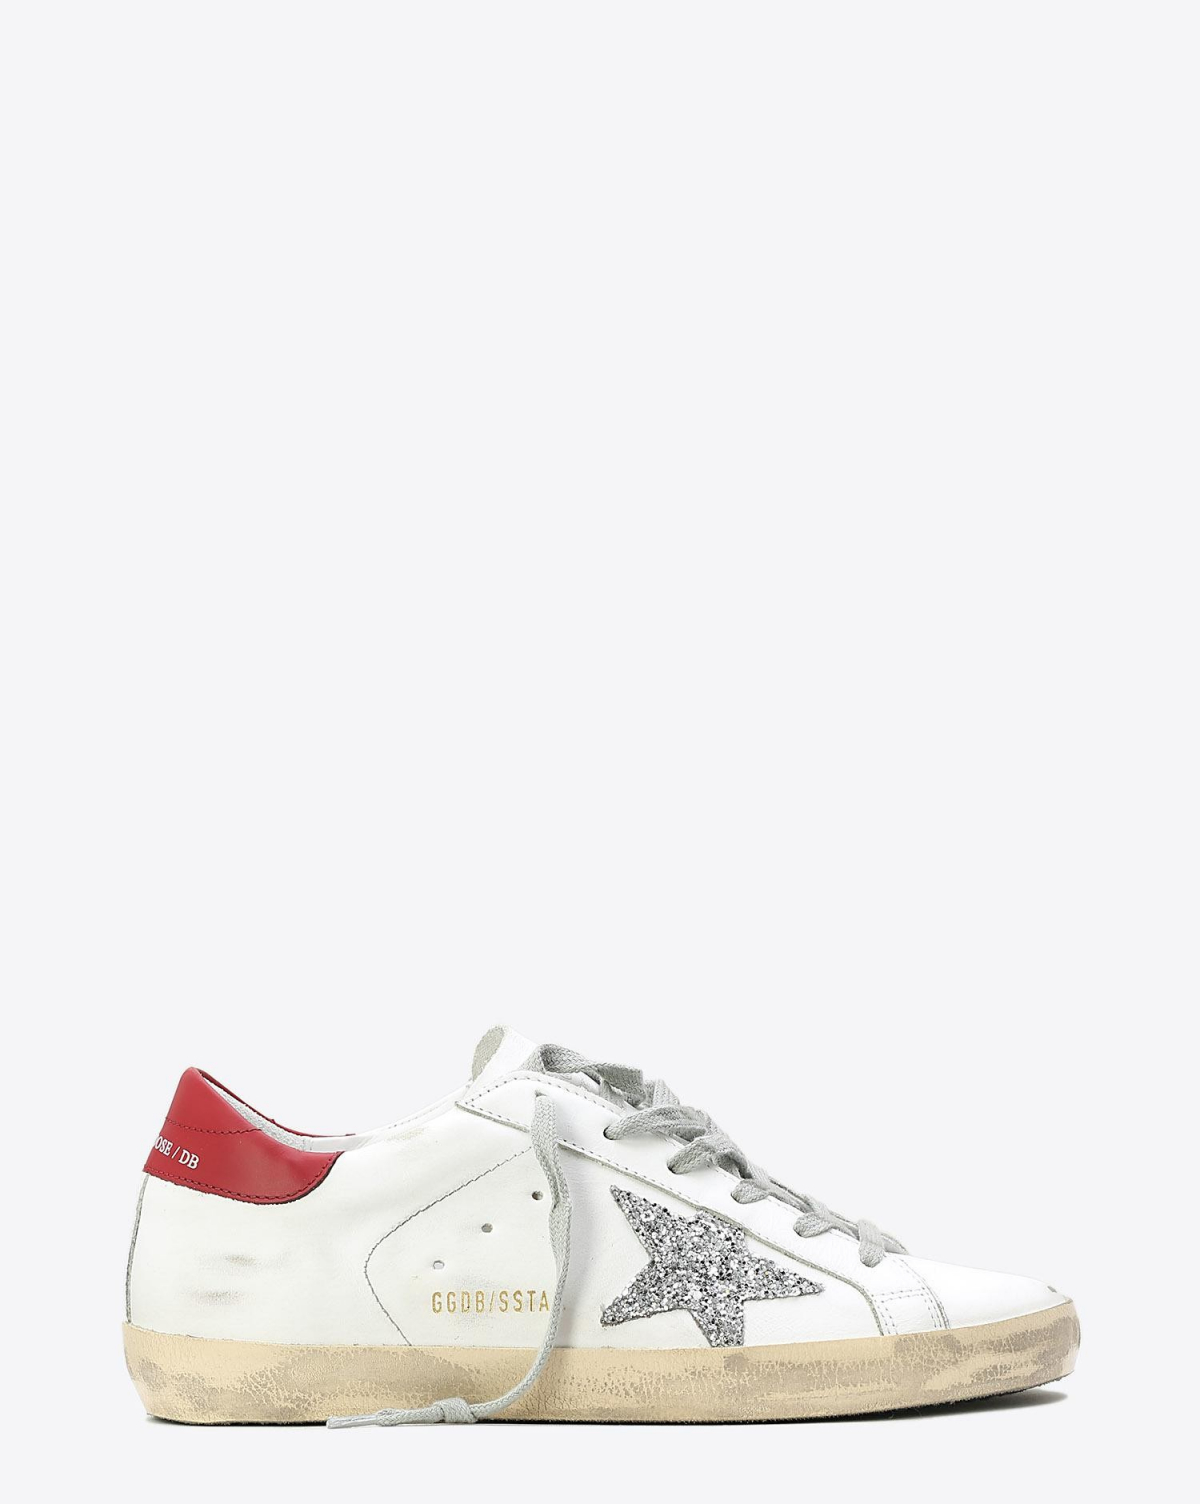 Golden Goose Woman Pré-Collection Sneakers Superstar White/Red - Silver Glitter